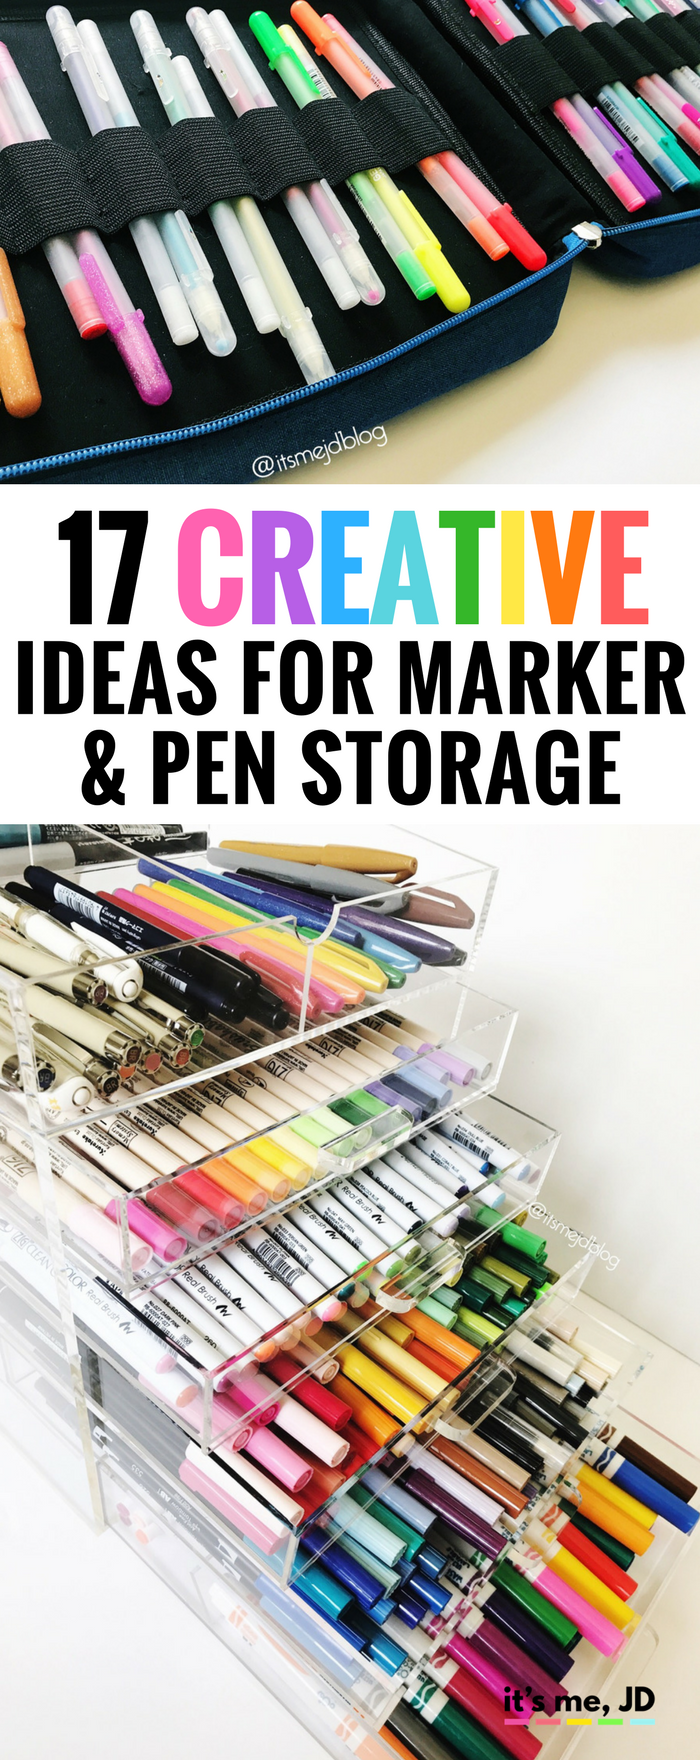 #handlettering Creative Ideas for Marker and Pen Storage, DIY, Portable, Travel Desk Options #storage